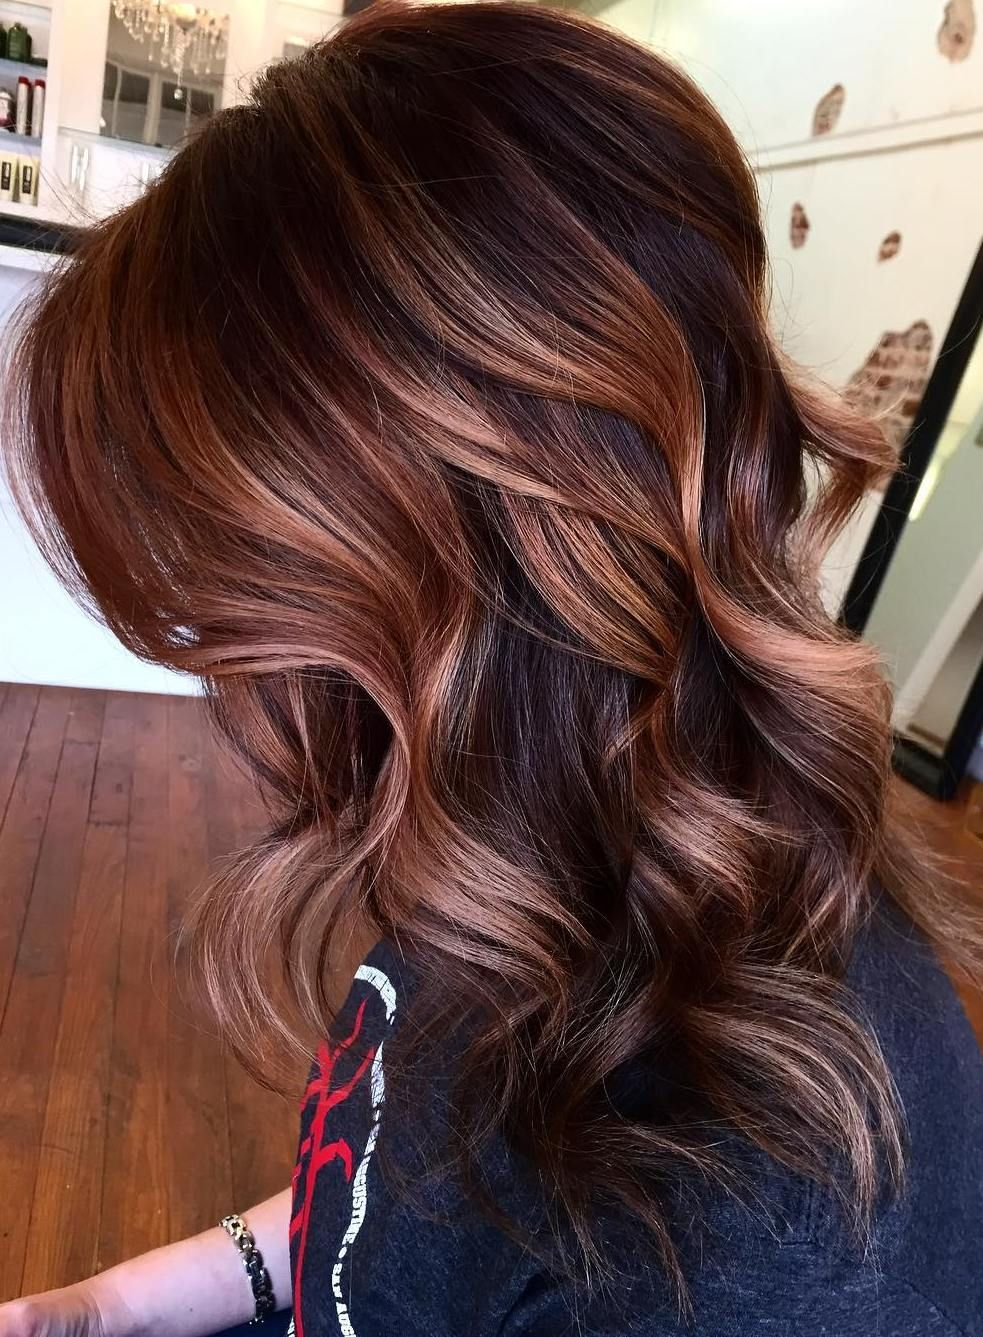 33 Hottest Copper Balayage Ideas for 2017  Copper Balayage Hairs in 2019  Hair, Copper